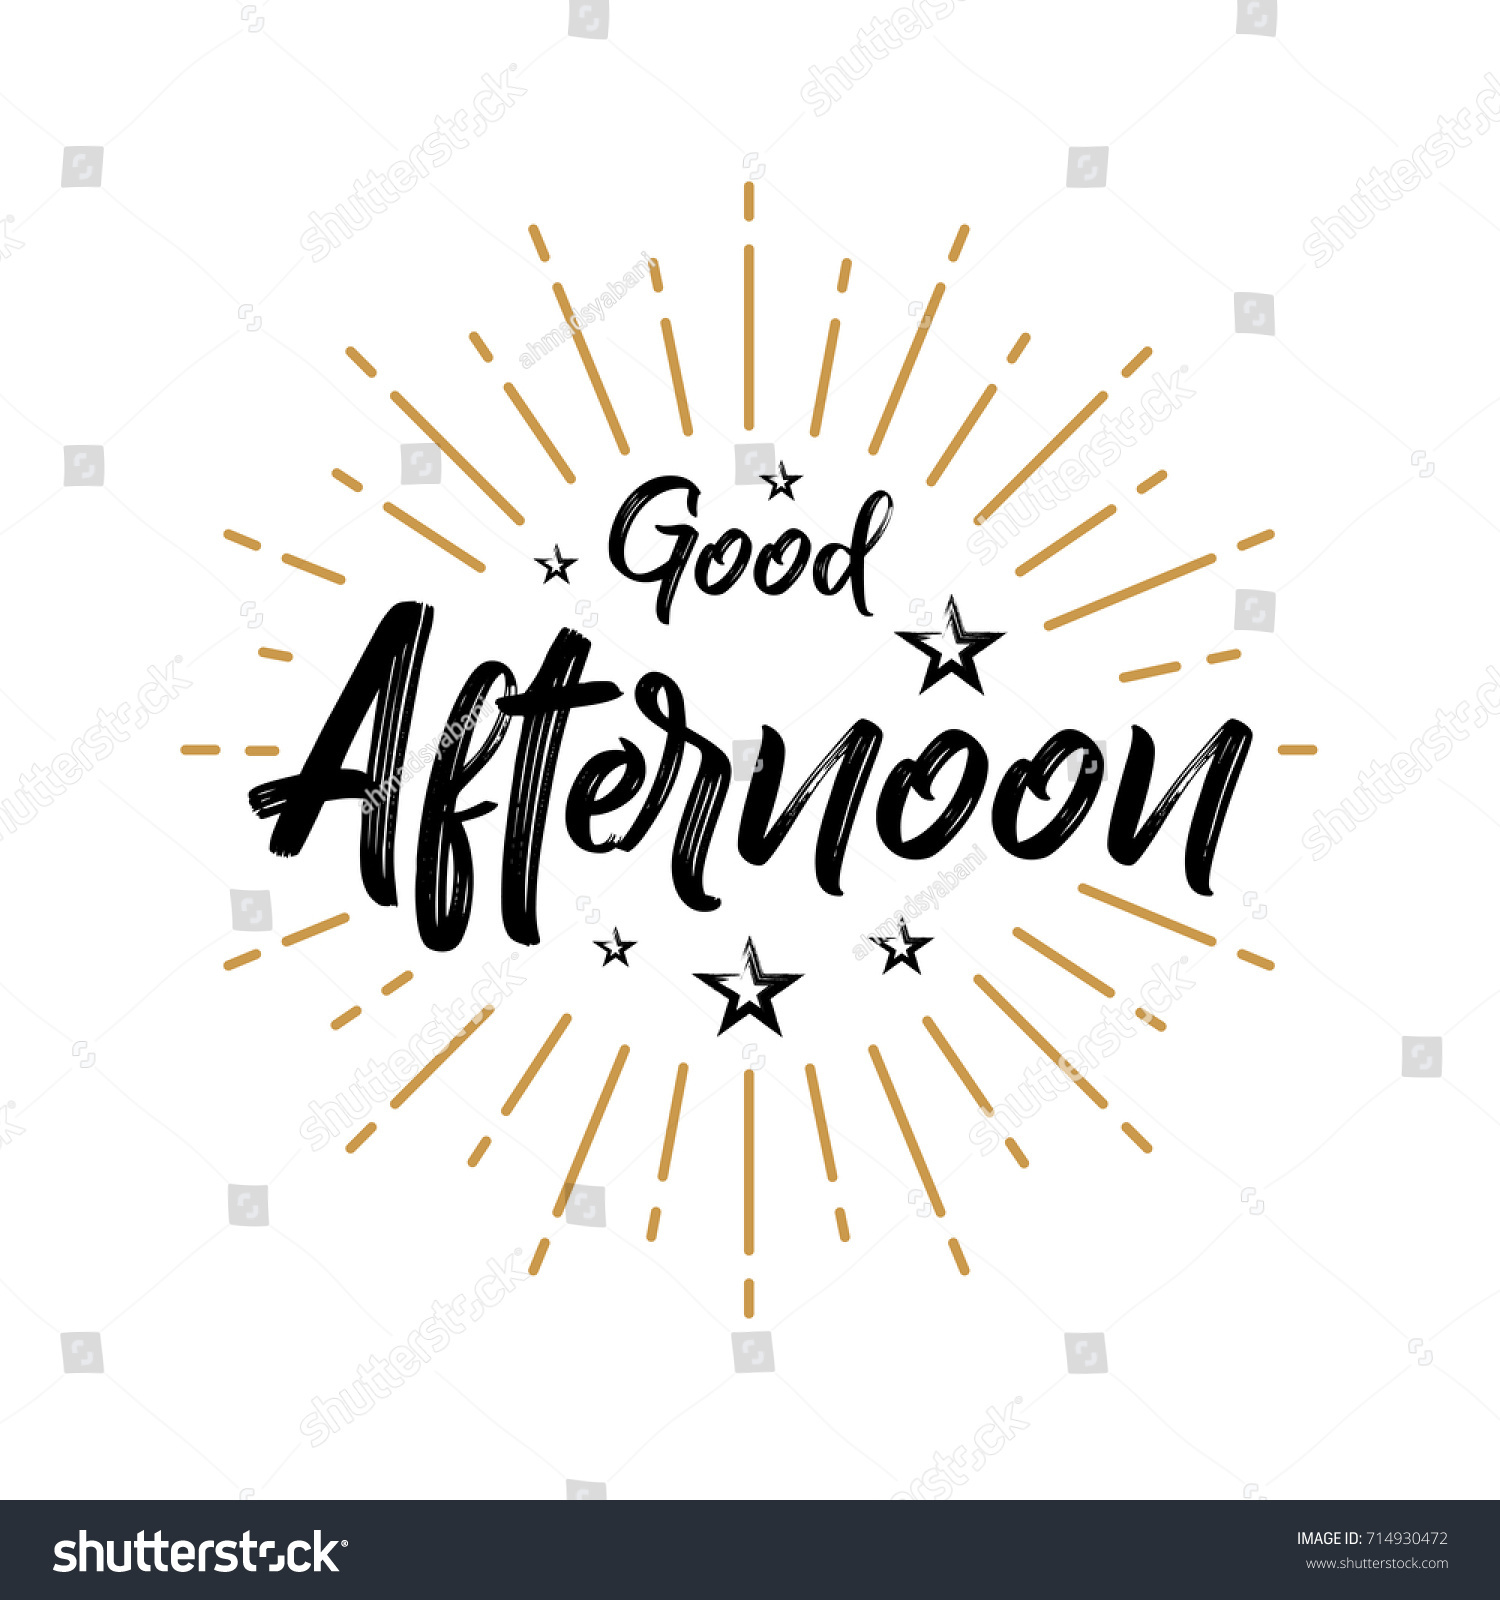 Good Afternoon Fireworks Today Day Lettering Stock Vector Royalty